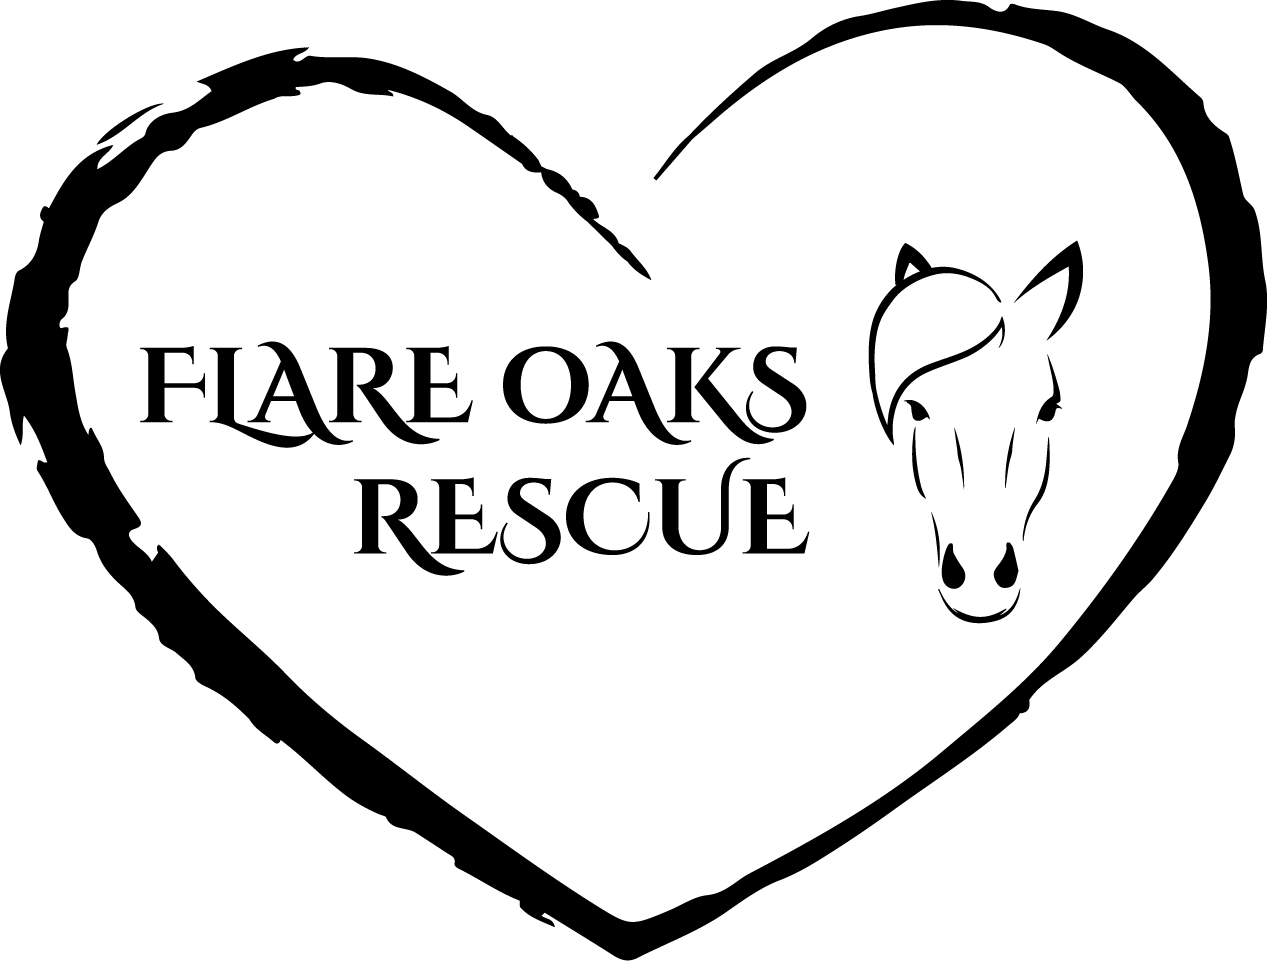 Flare Oaks Rescue – Harnett County, NC